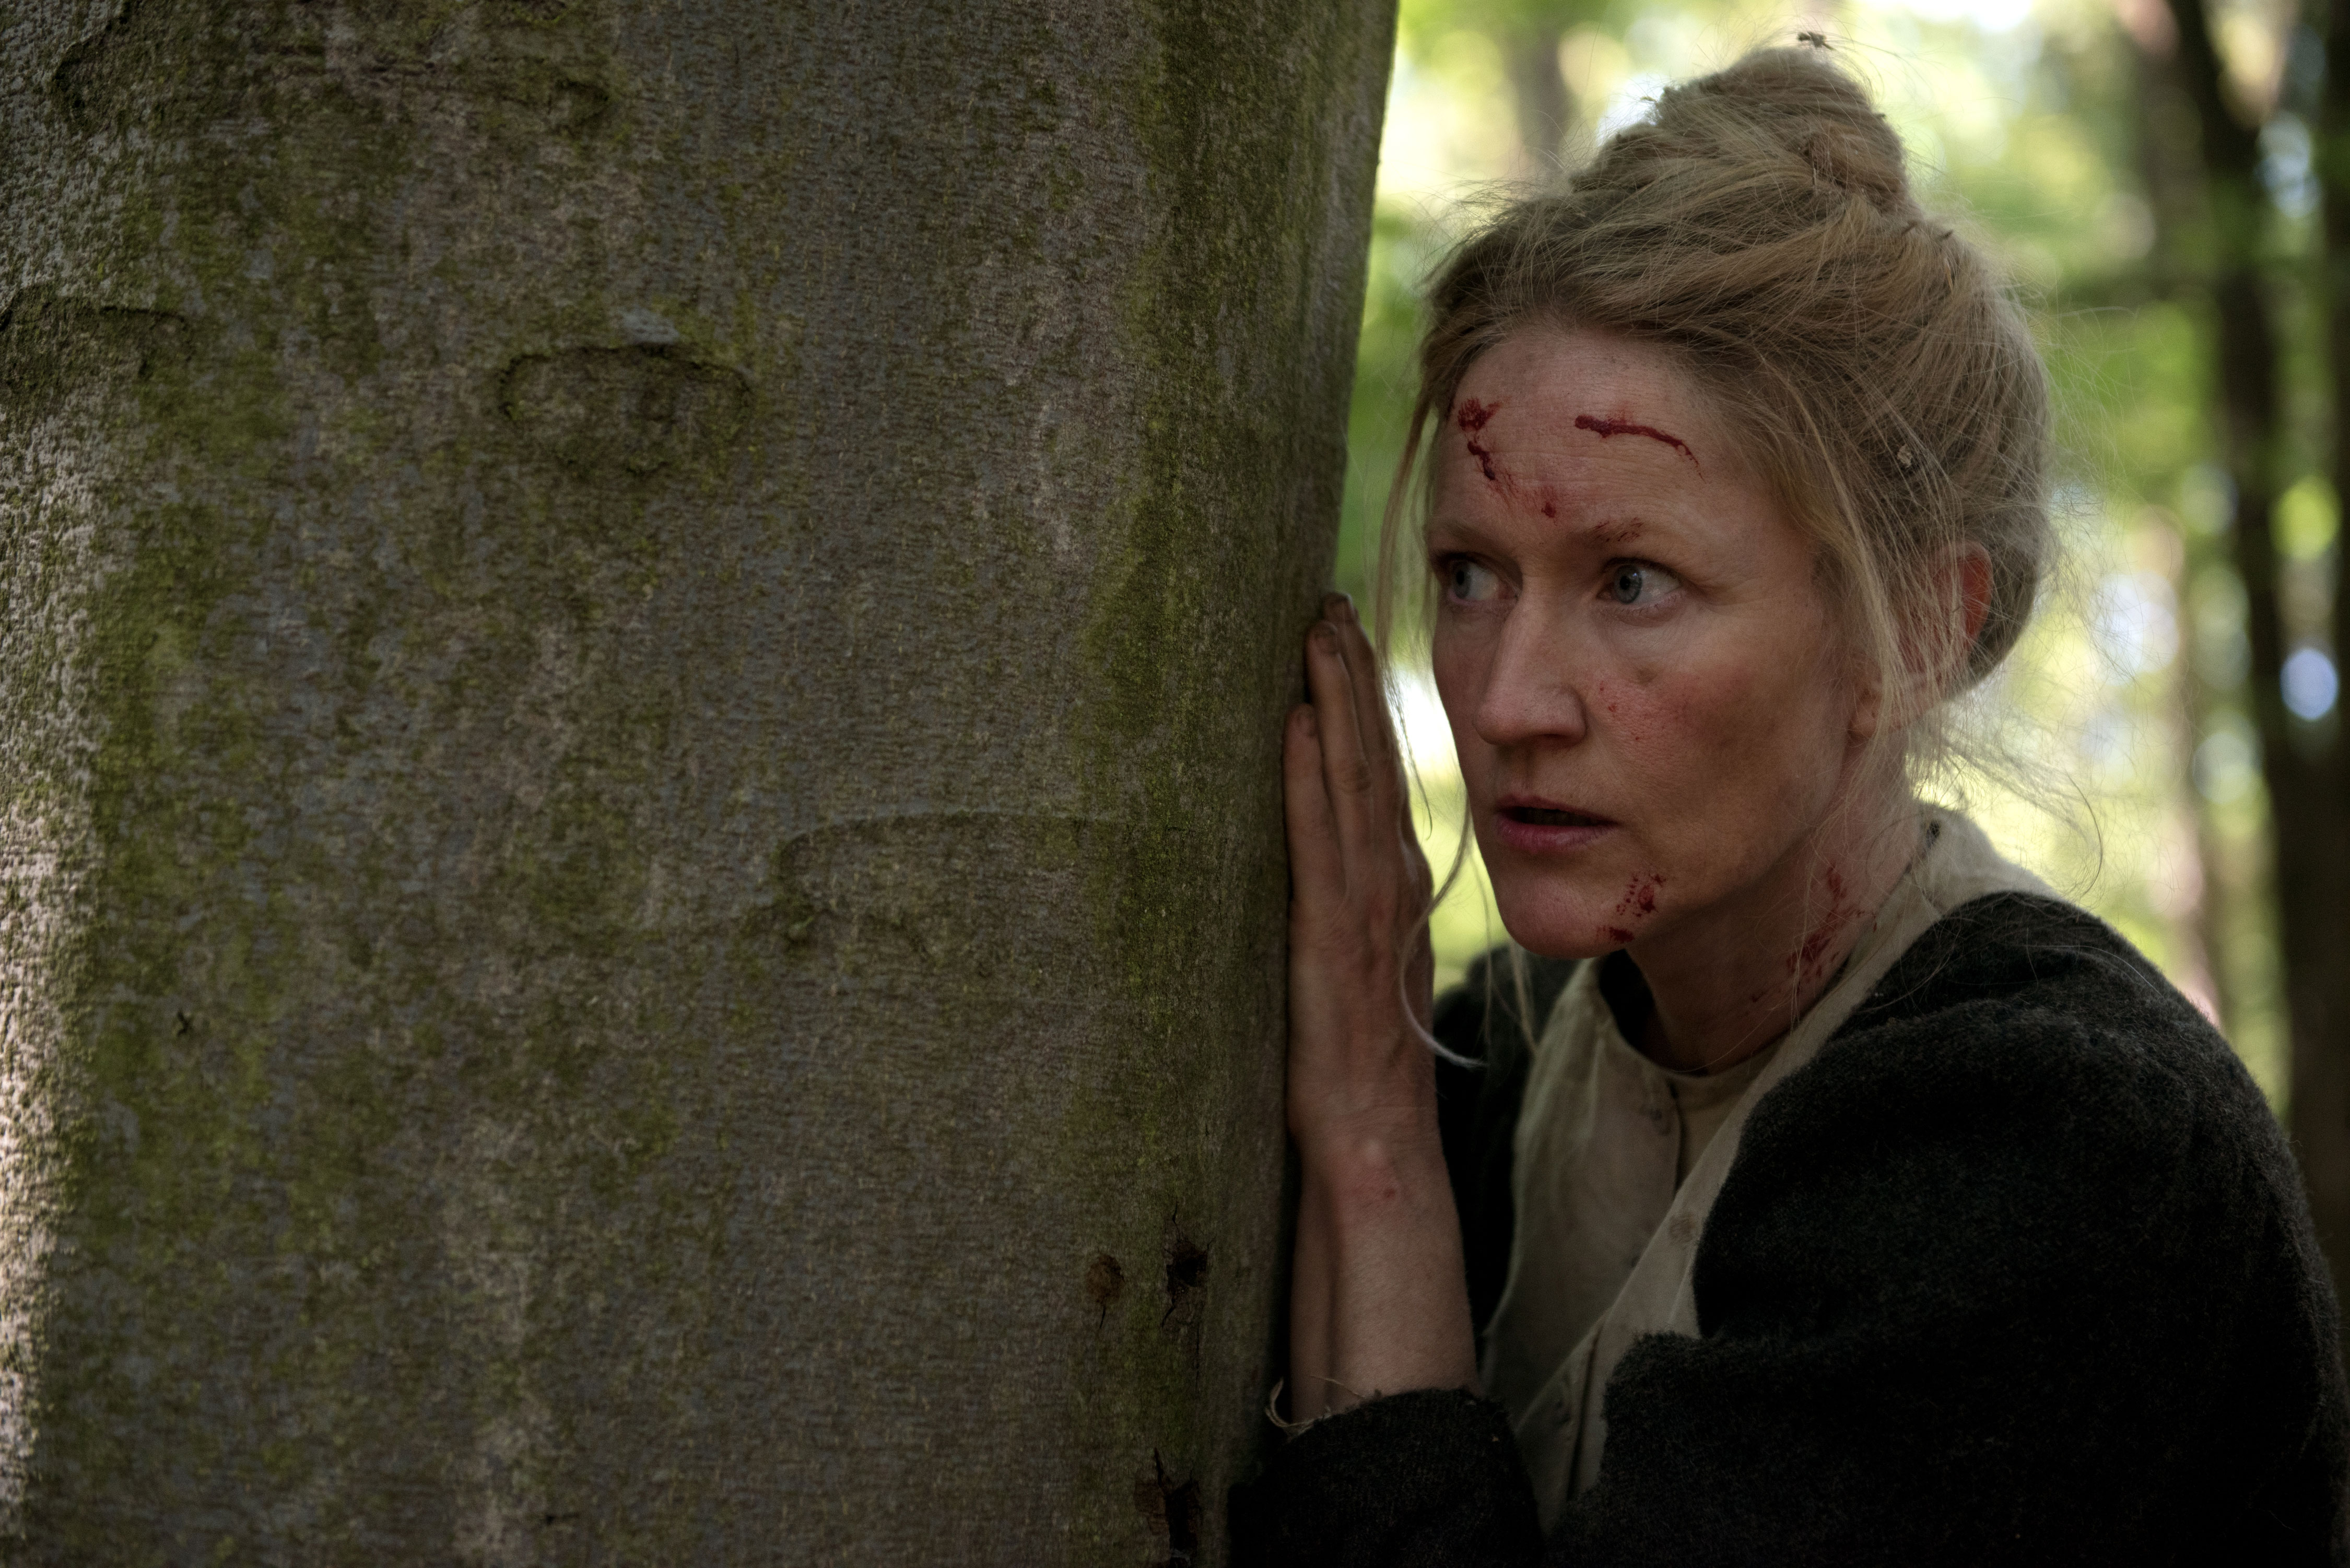 Lore Mary Webster The Witch Of Hadley Tv Episode 2018 Imdb Phillips 7 Pin Trailer Connector Wiring Diagram